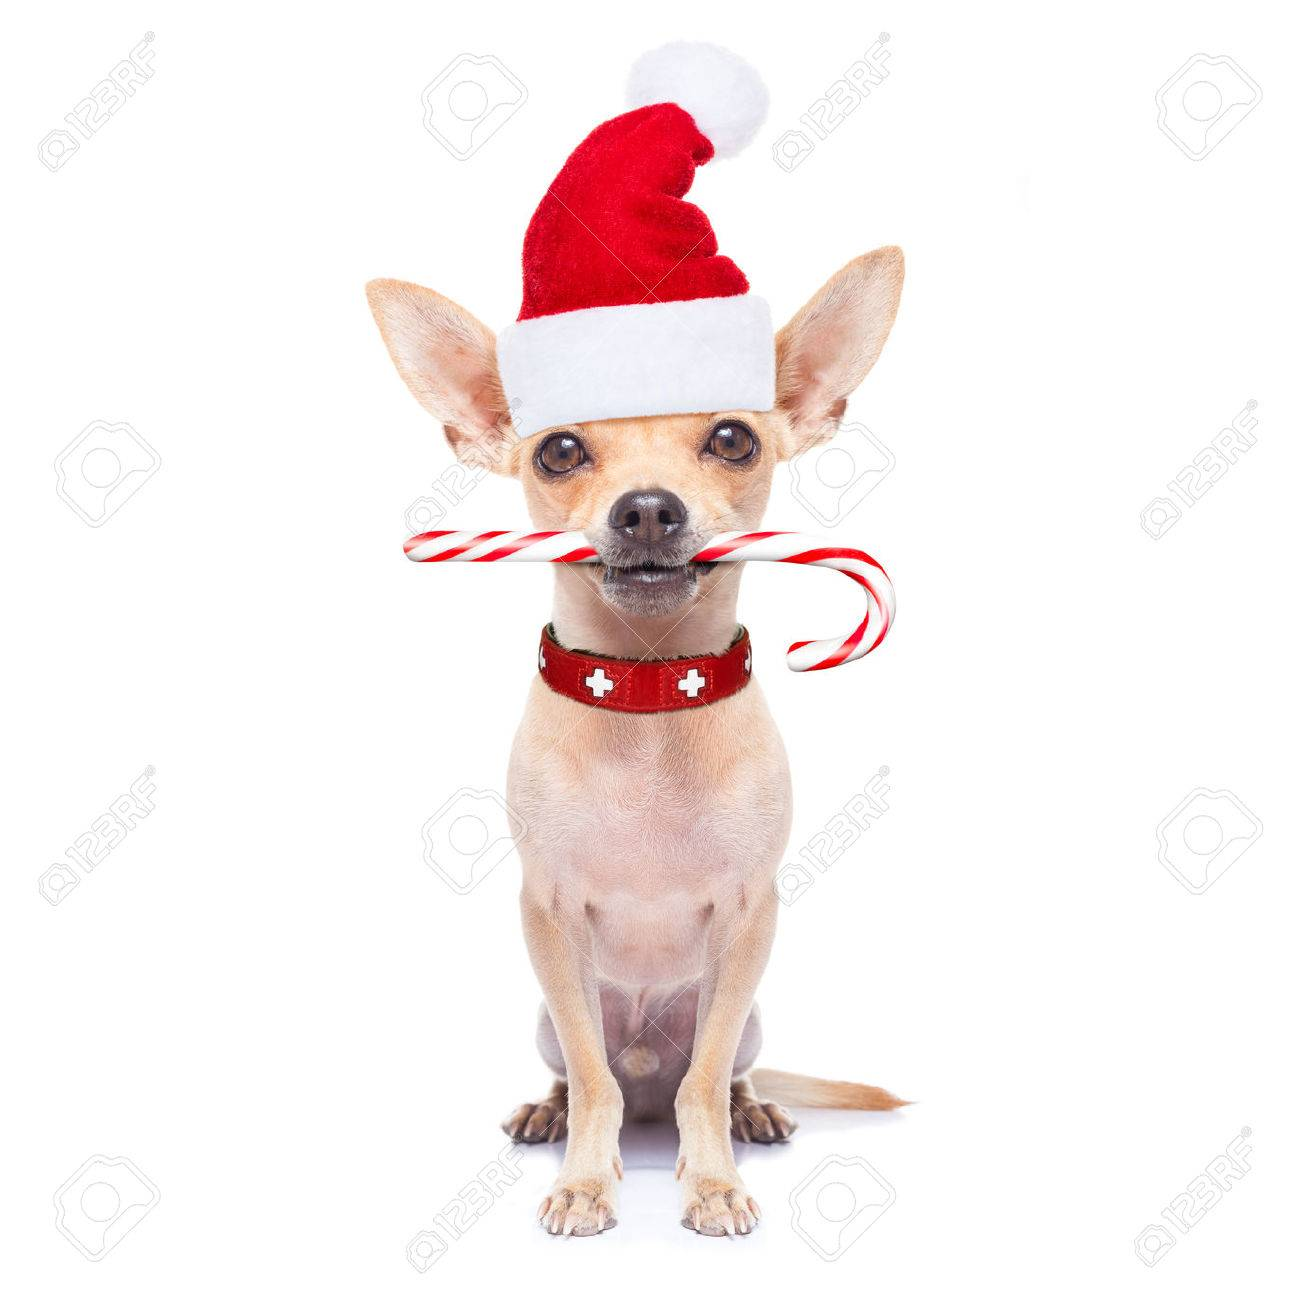 chihuahua santa claus dog with sugar candy cane in mouth, for christmas , isolated on white background Stock Photo - 46576989